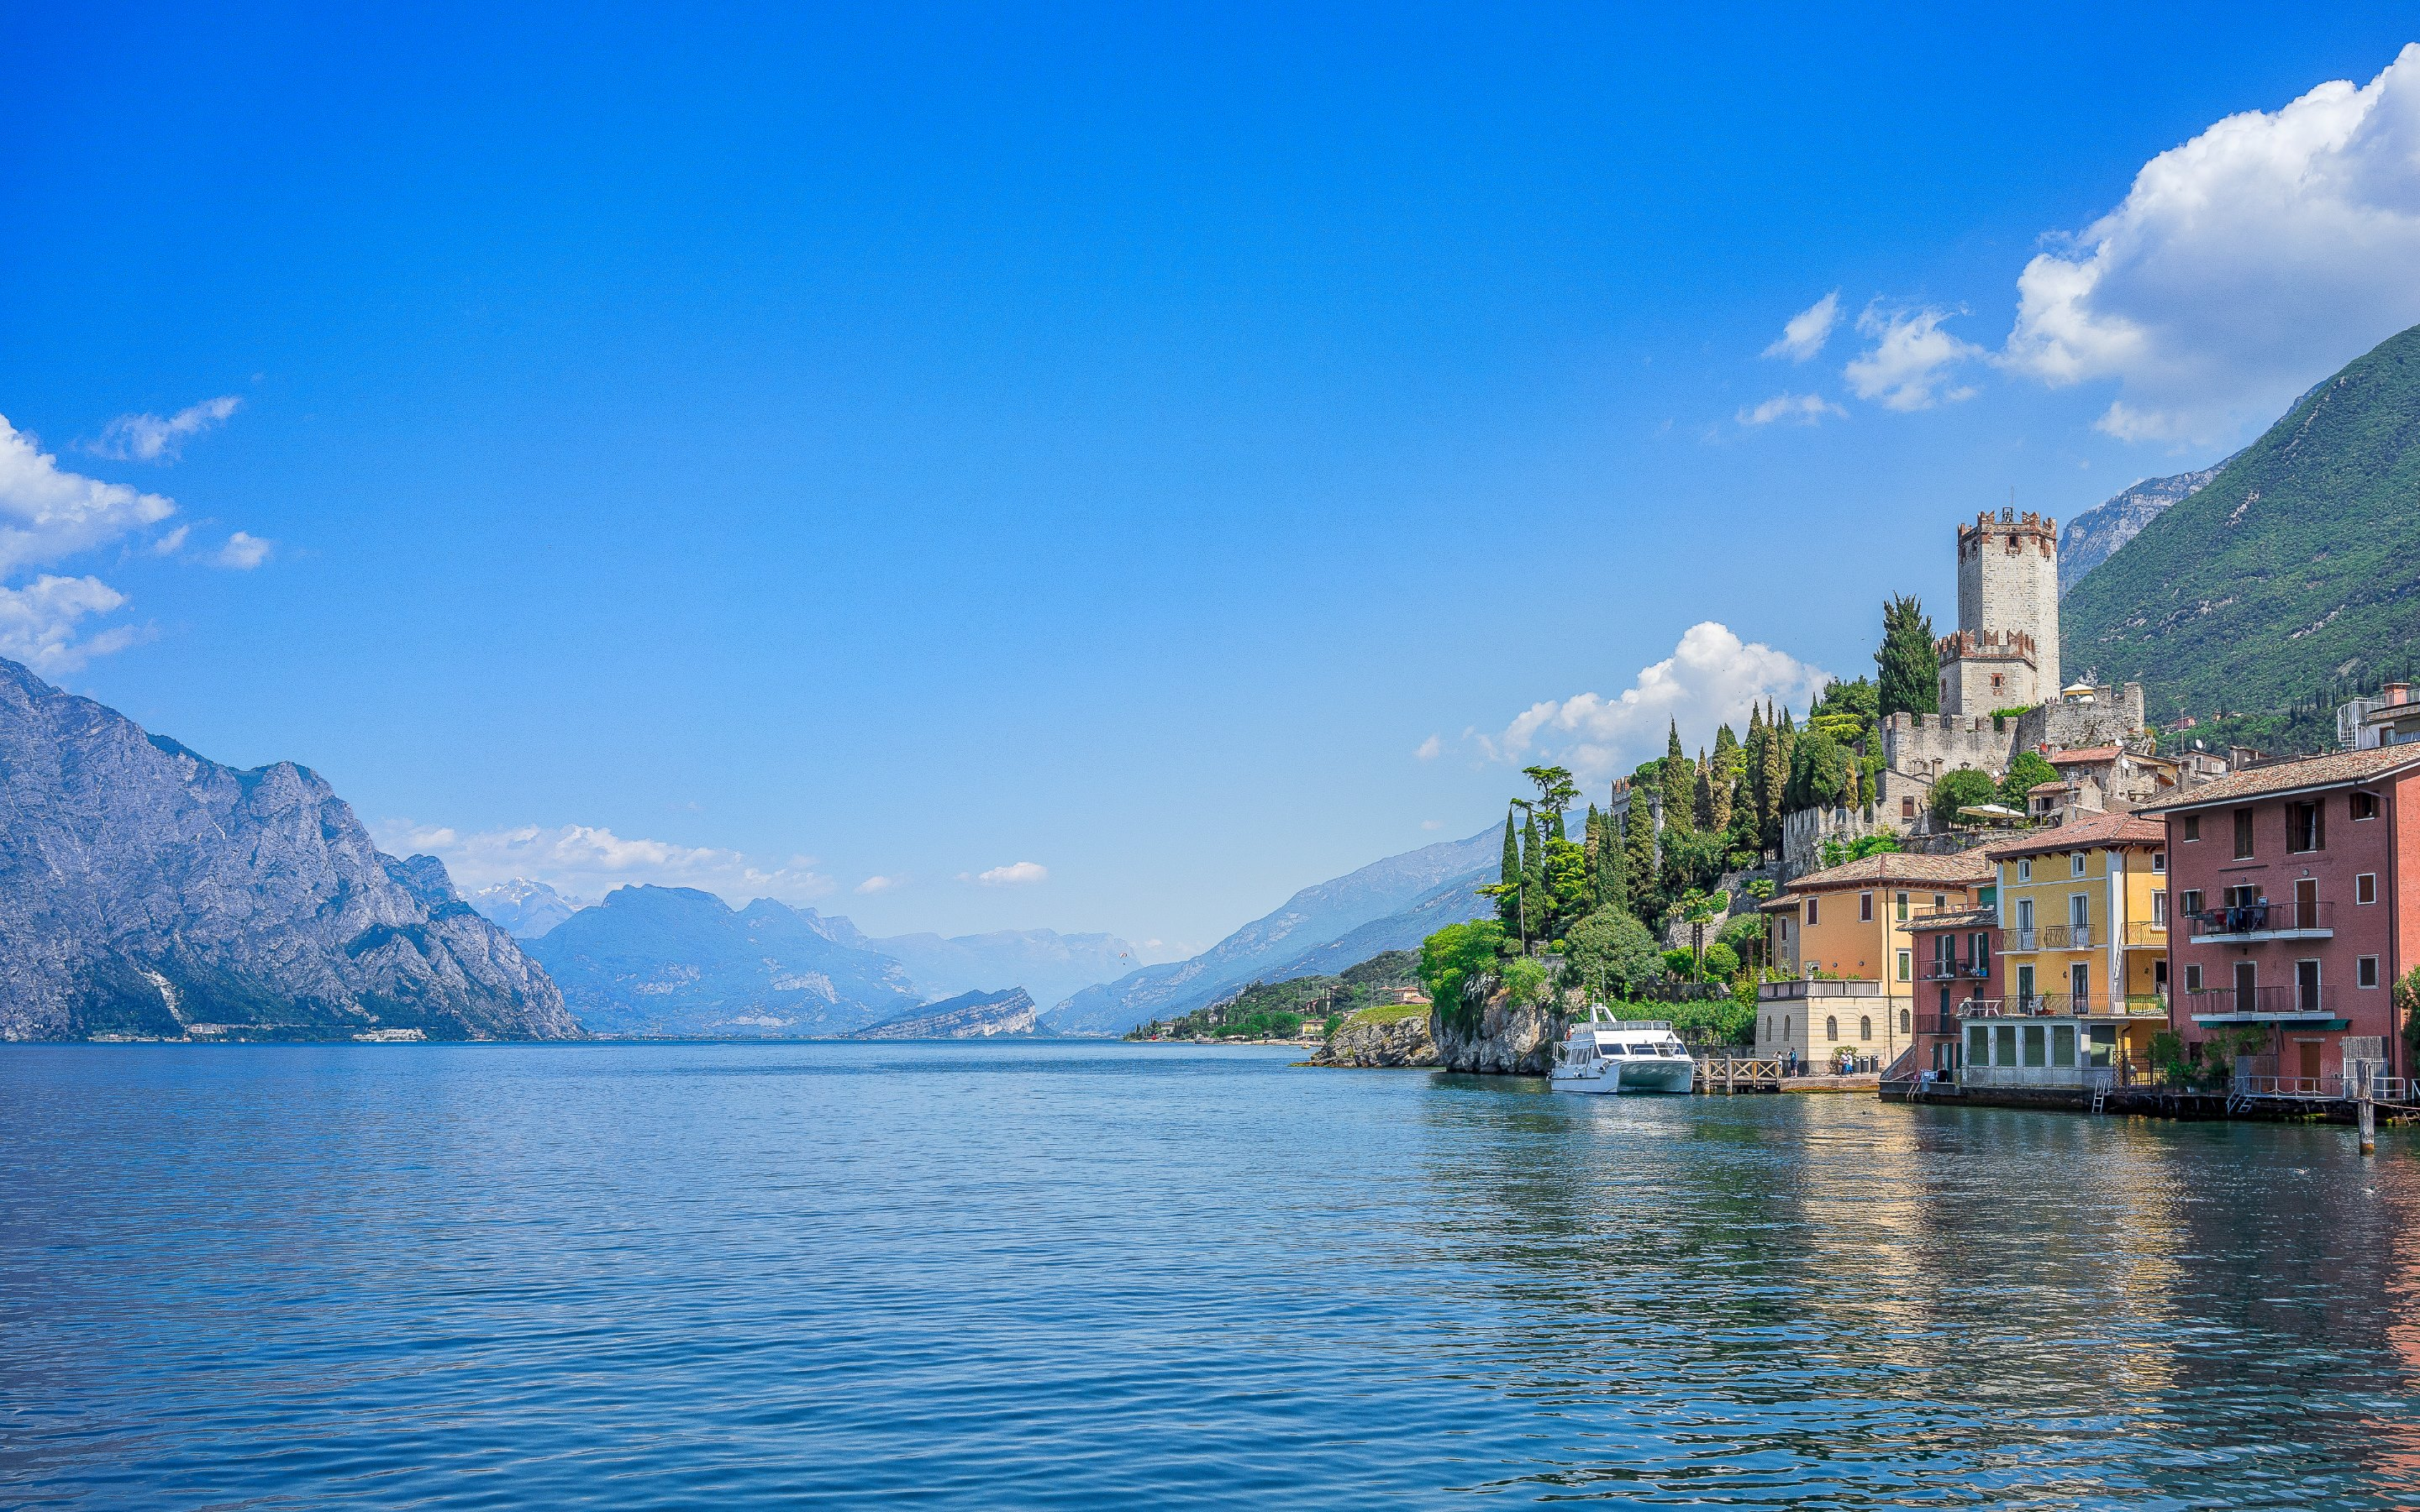 Wallpaper Hd For Desktop Full Screen Cute Baby Download Lake Garda Wallpaper Gallery